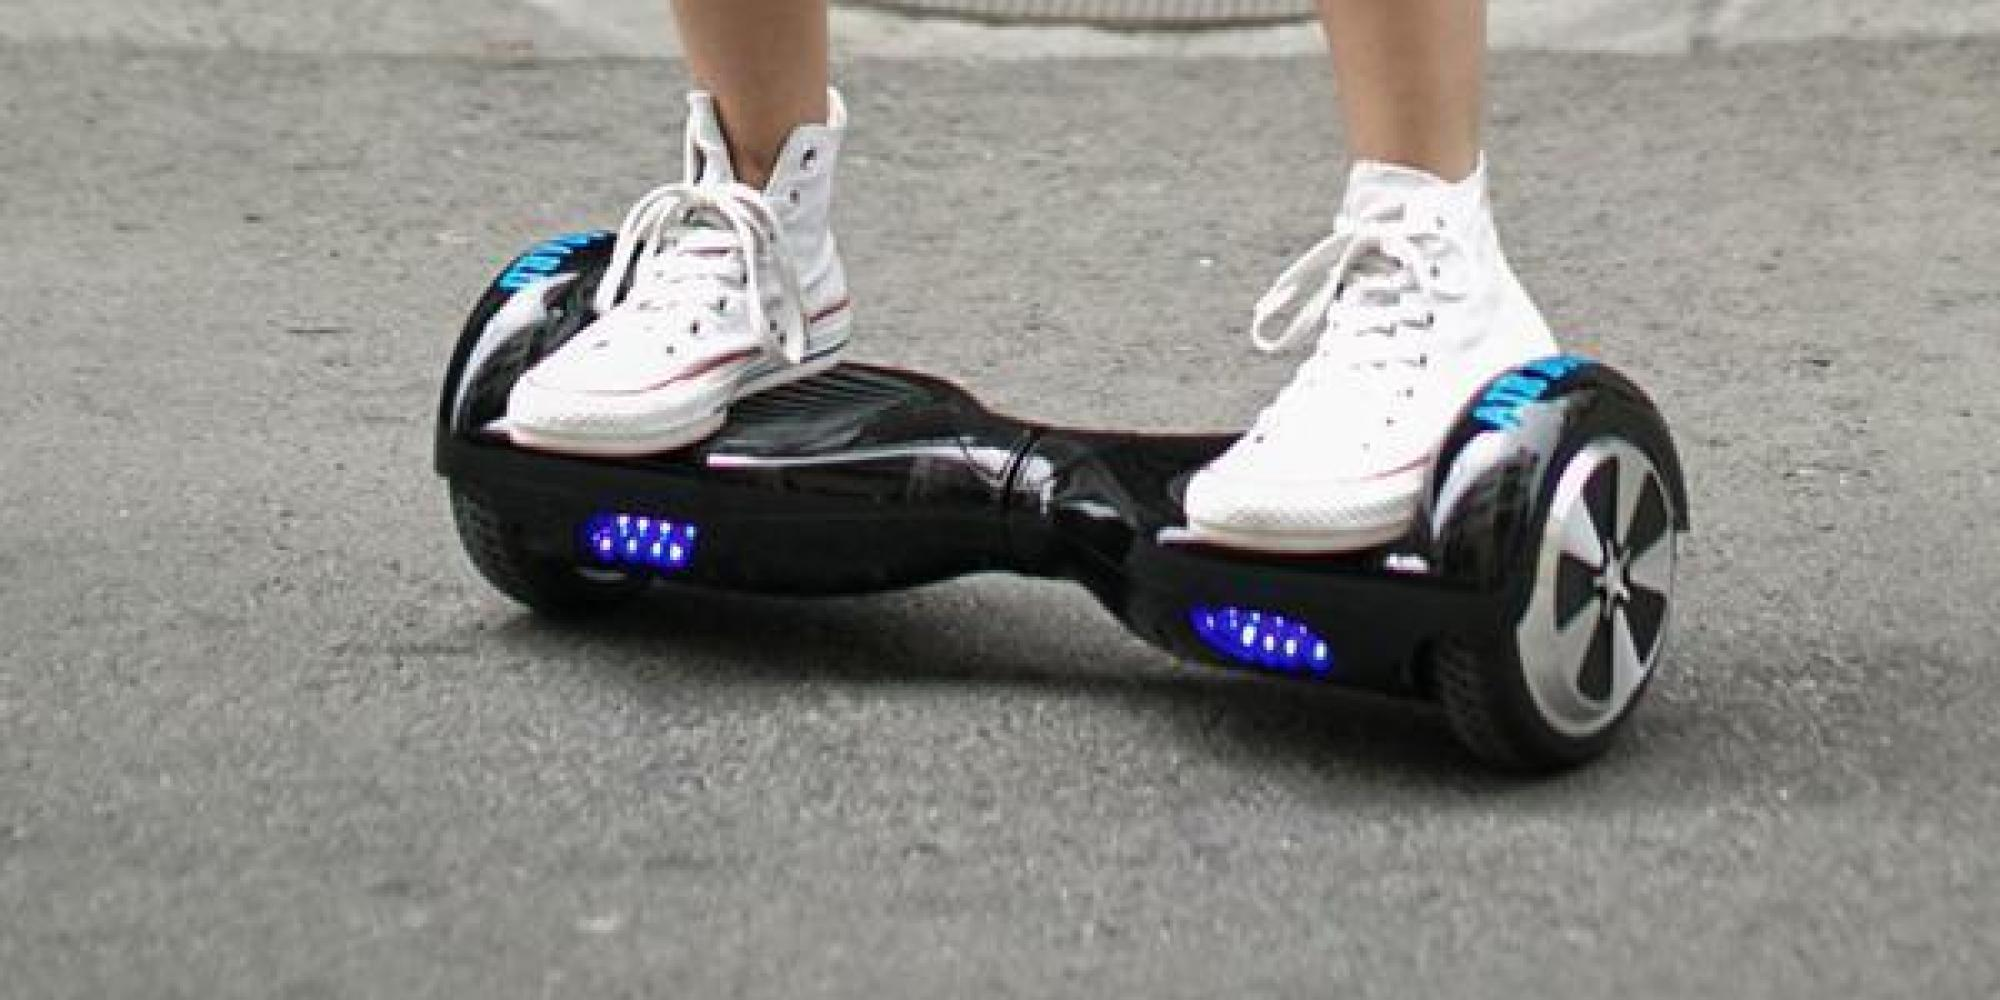 39 hoverboards 39 are illegal to ride on uk roads and pavements police warn huffpost uk. Black Bedroom Furniture Sets. Home Design Ideas